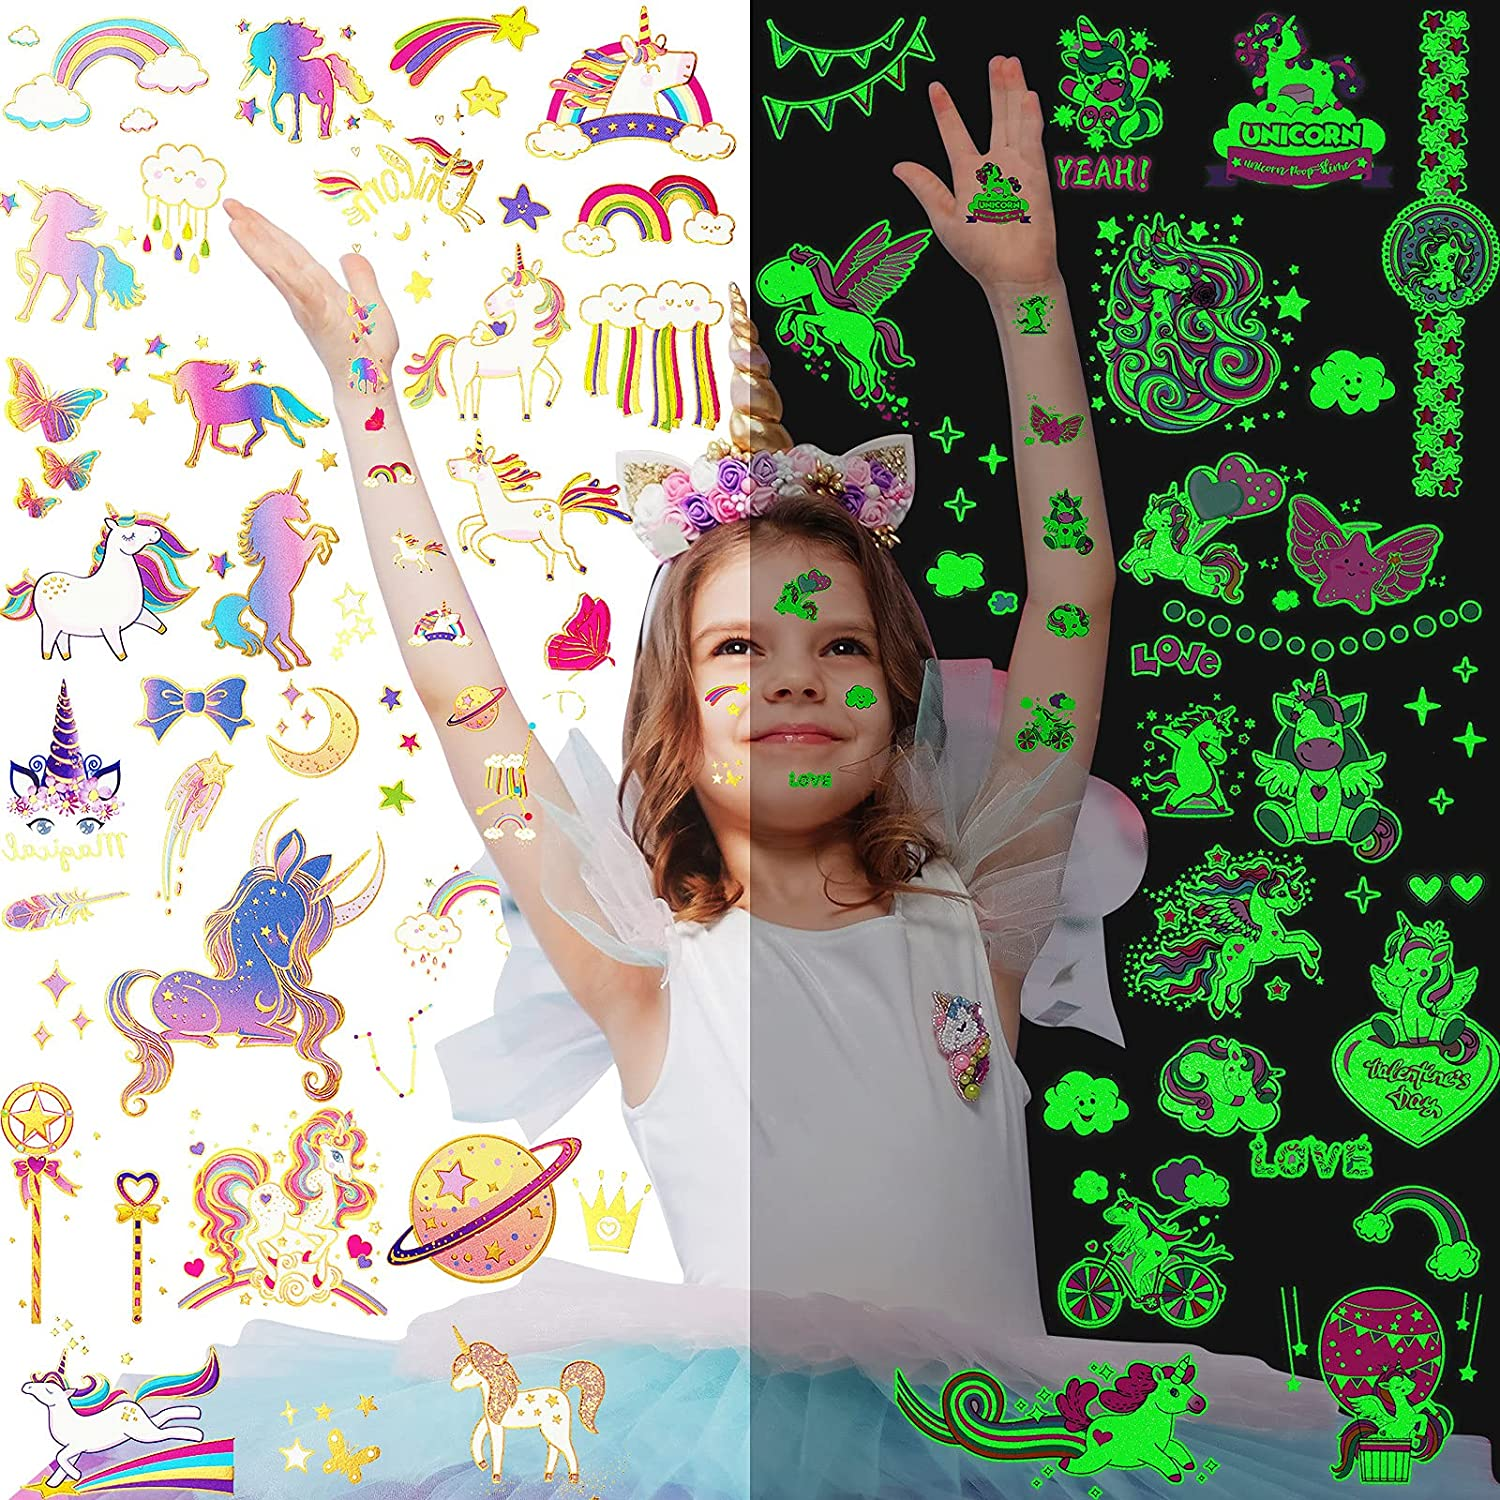 80 Pieces Unicorn Temporary Tattoos for Un 55% OFF the in Industry No. 1 Kids Glow Dark